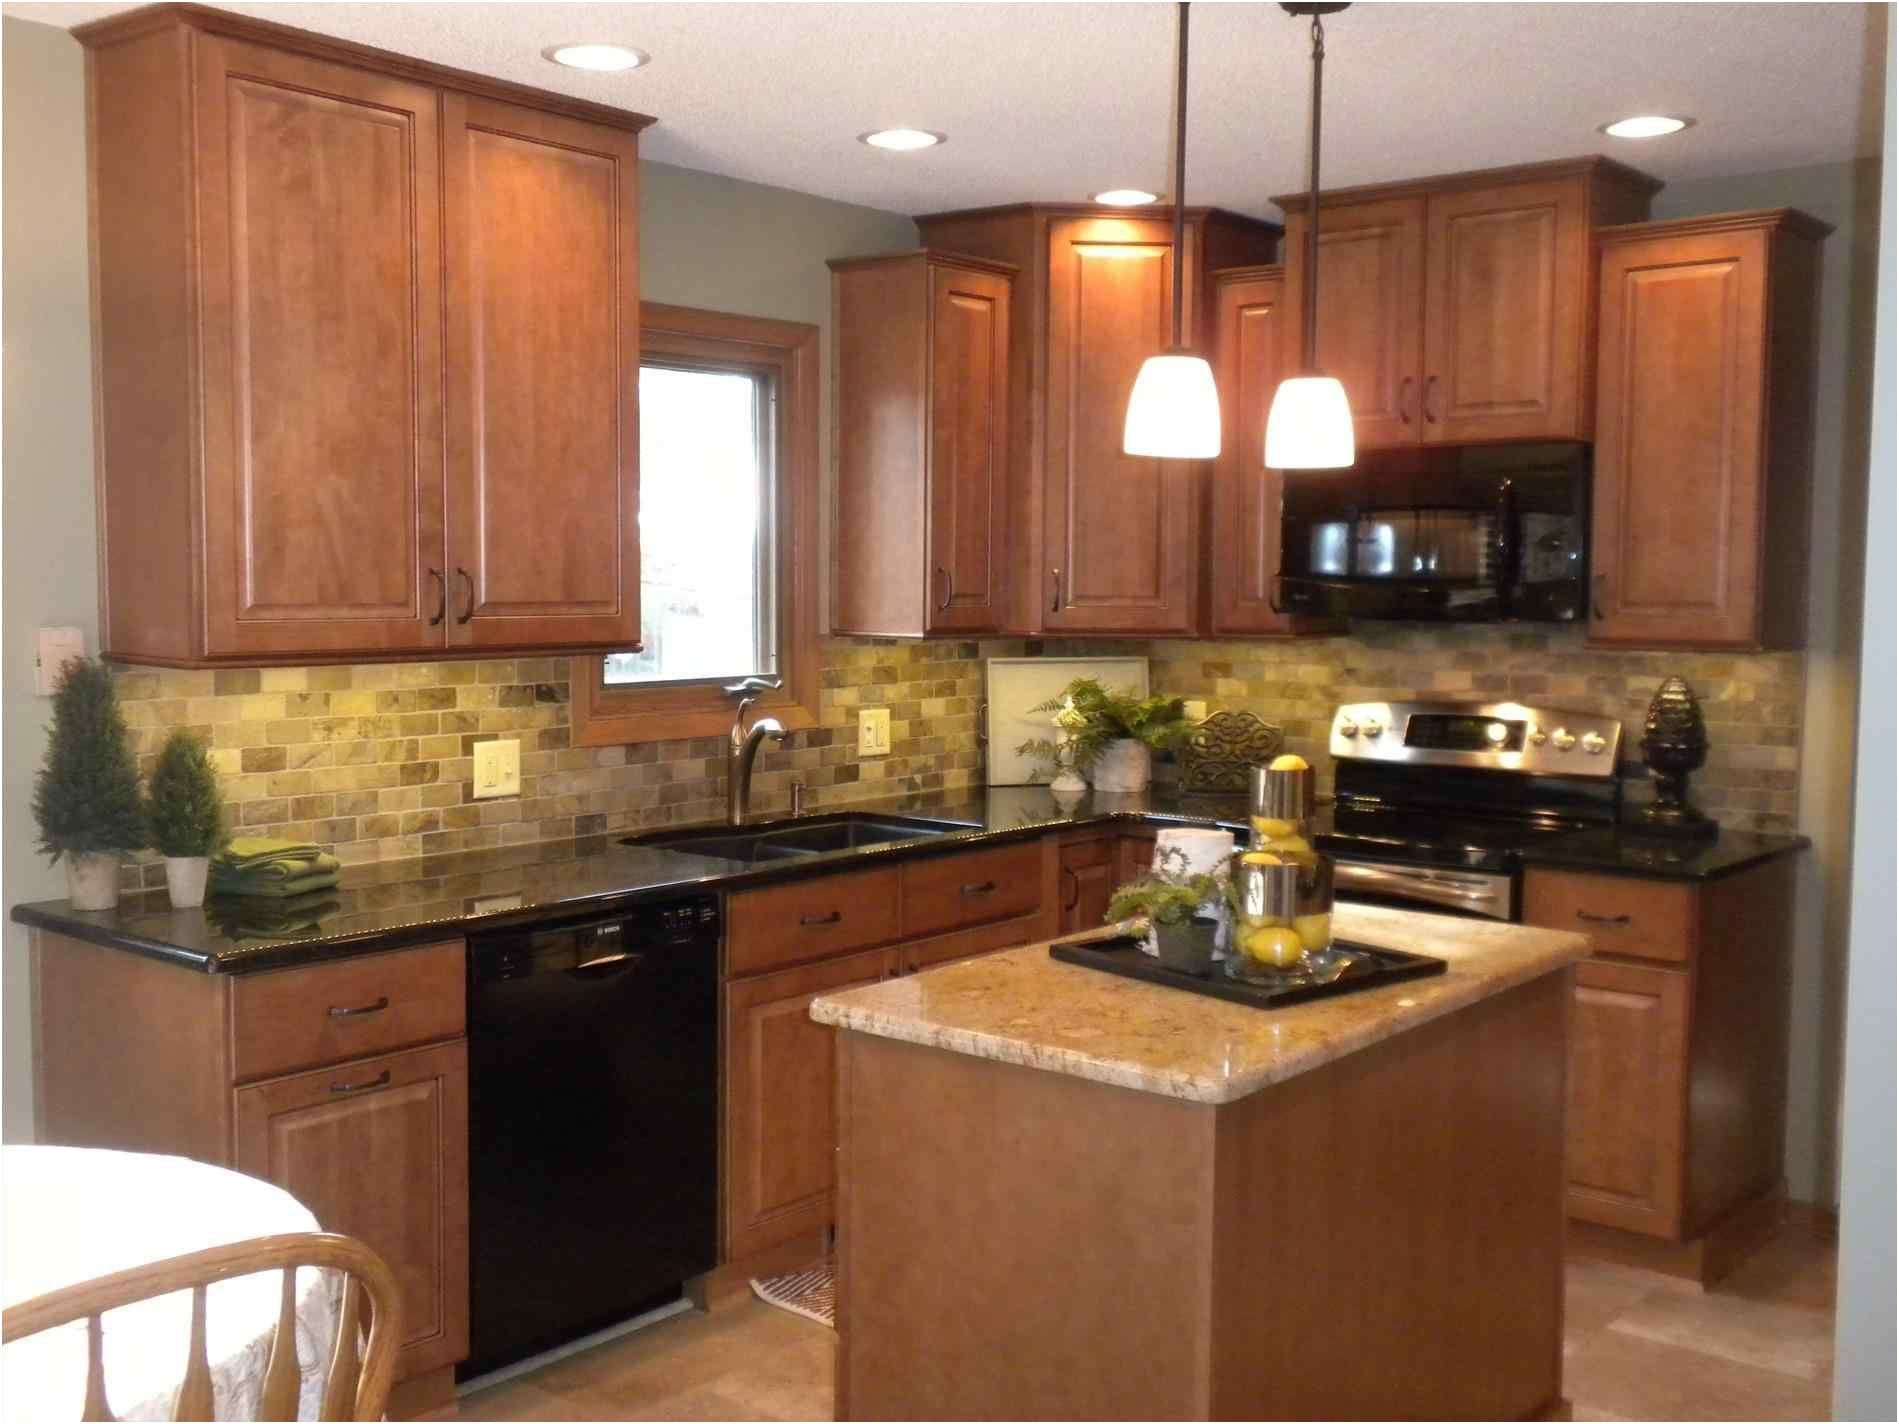 Kitchens With Oak Cabinets And Black Appliances